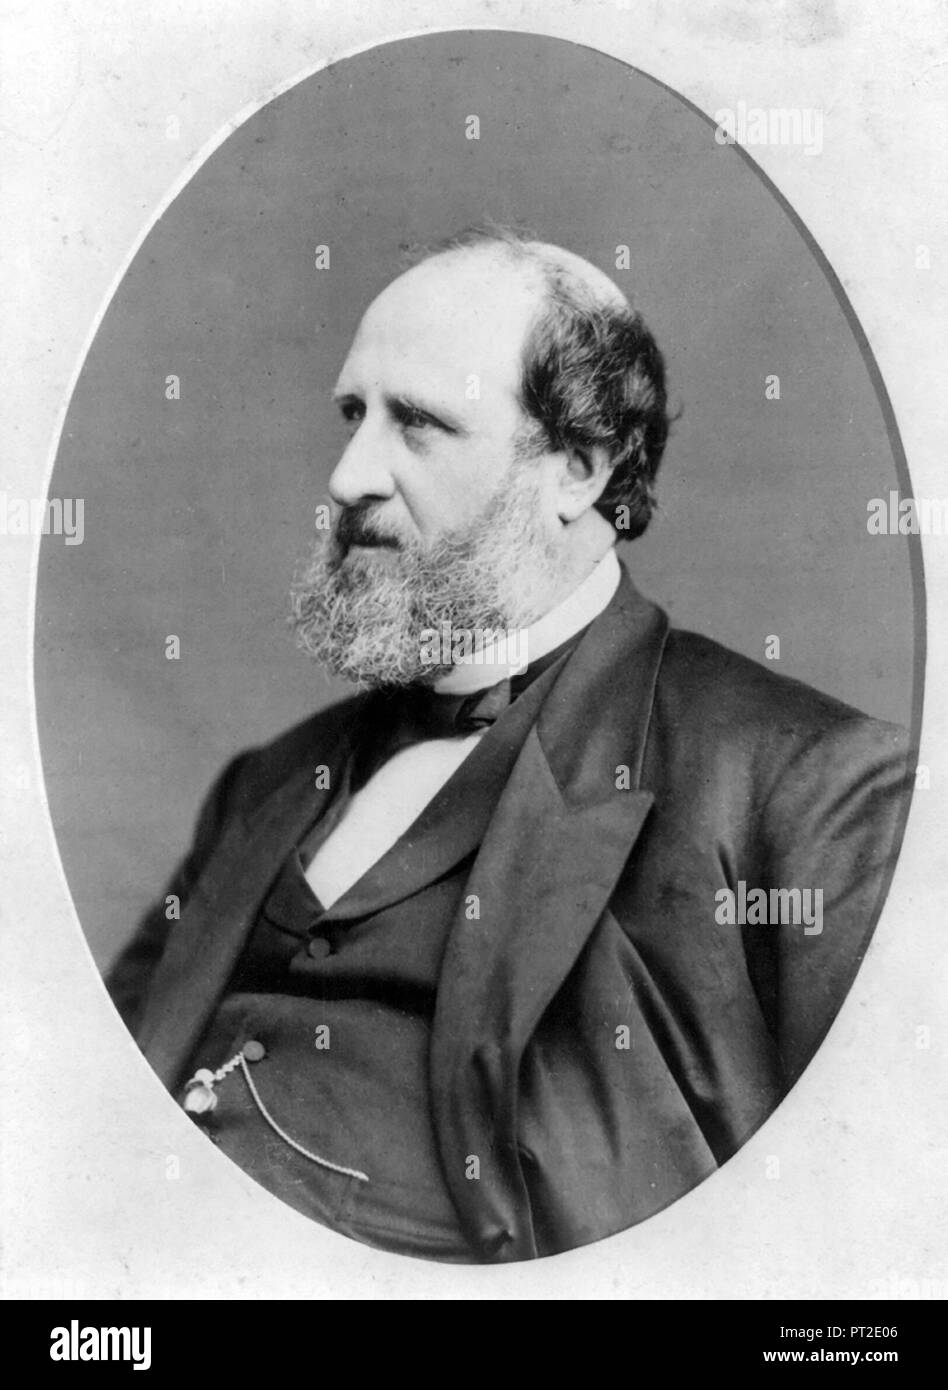 WILLIAM TWEED (1823-1878) American Democratic politician - Stock Image